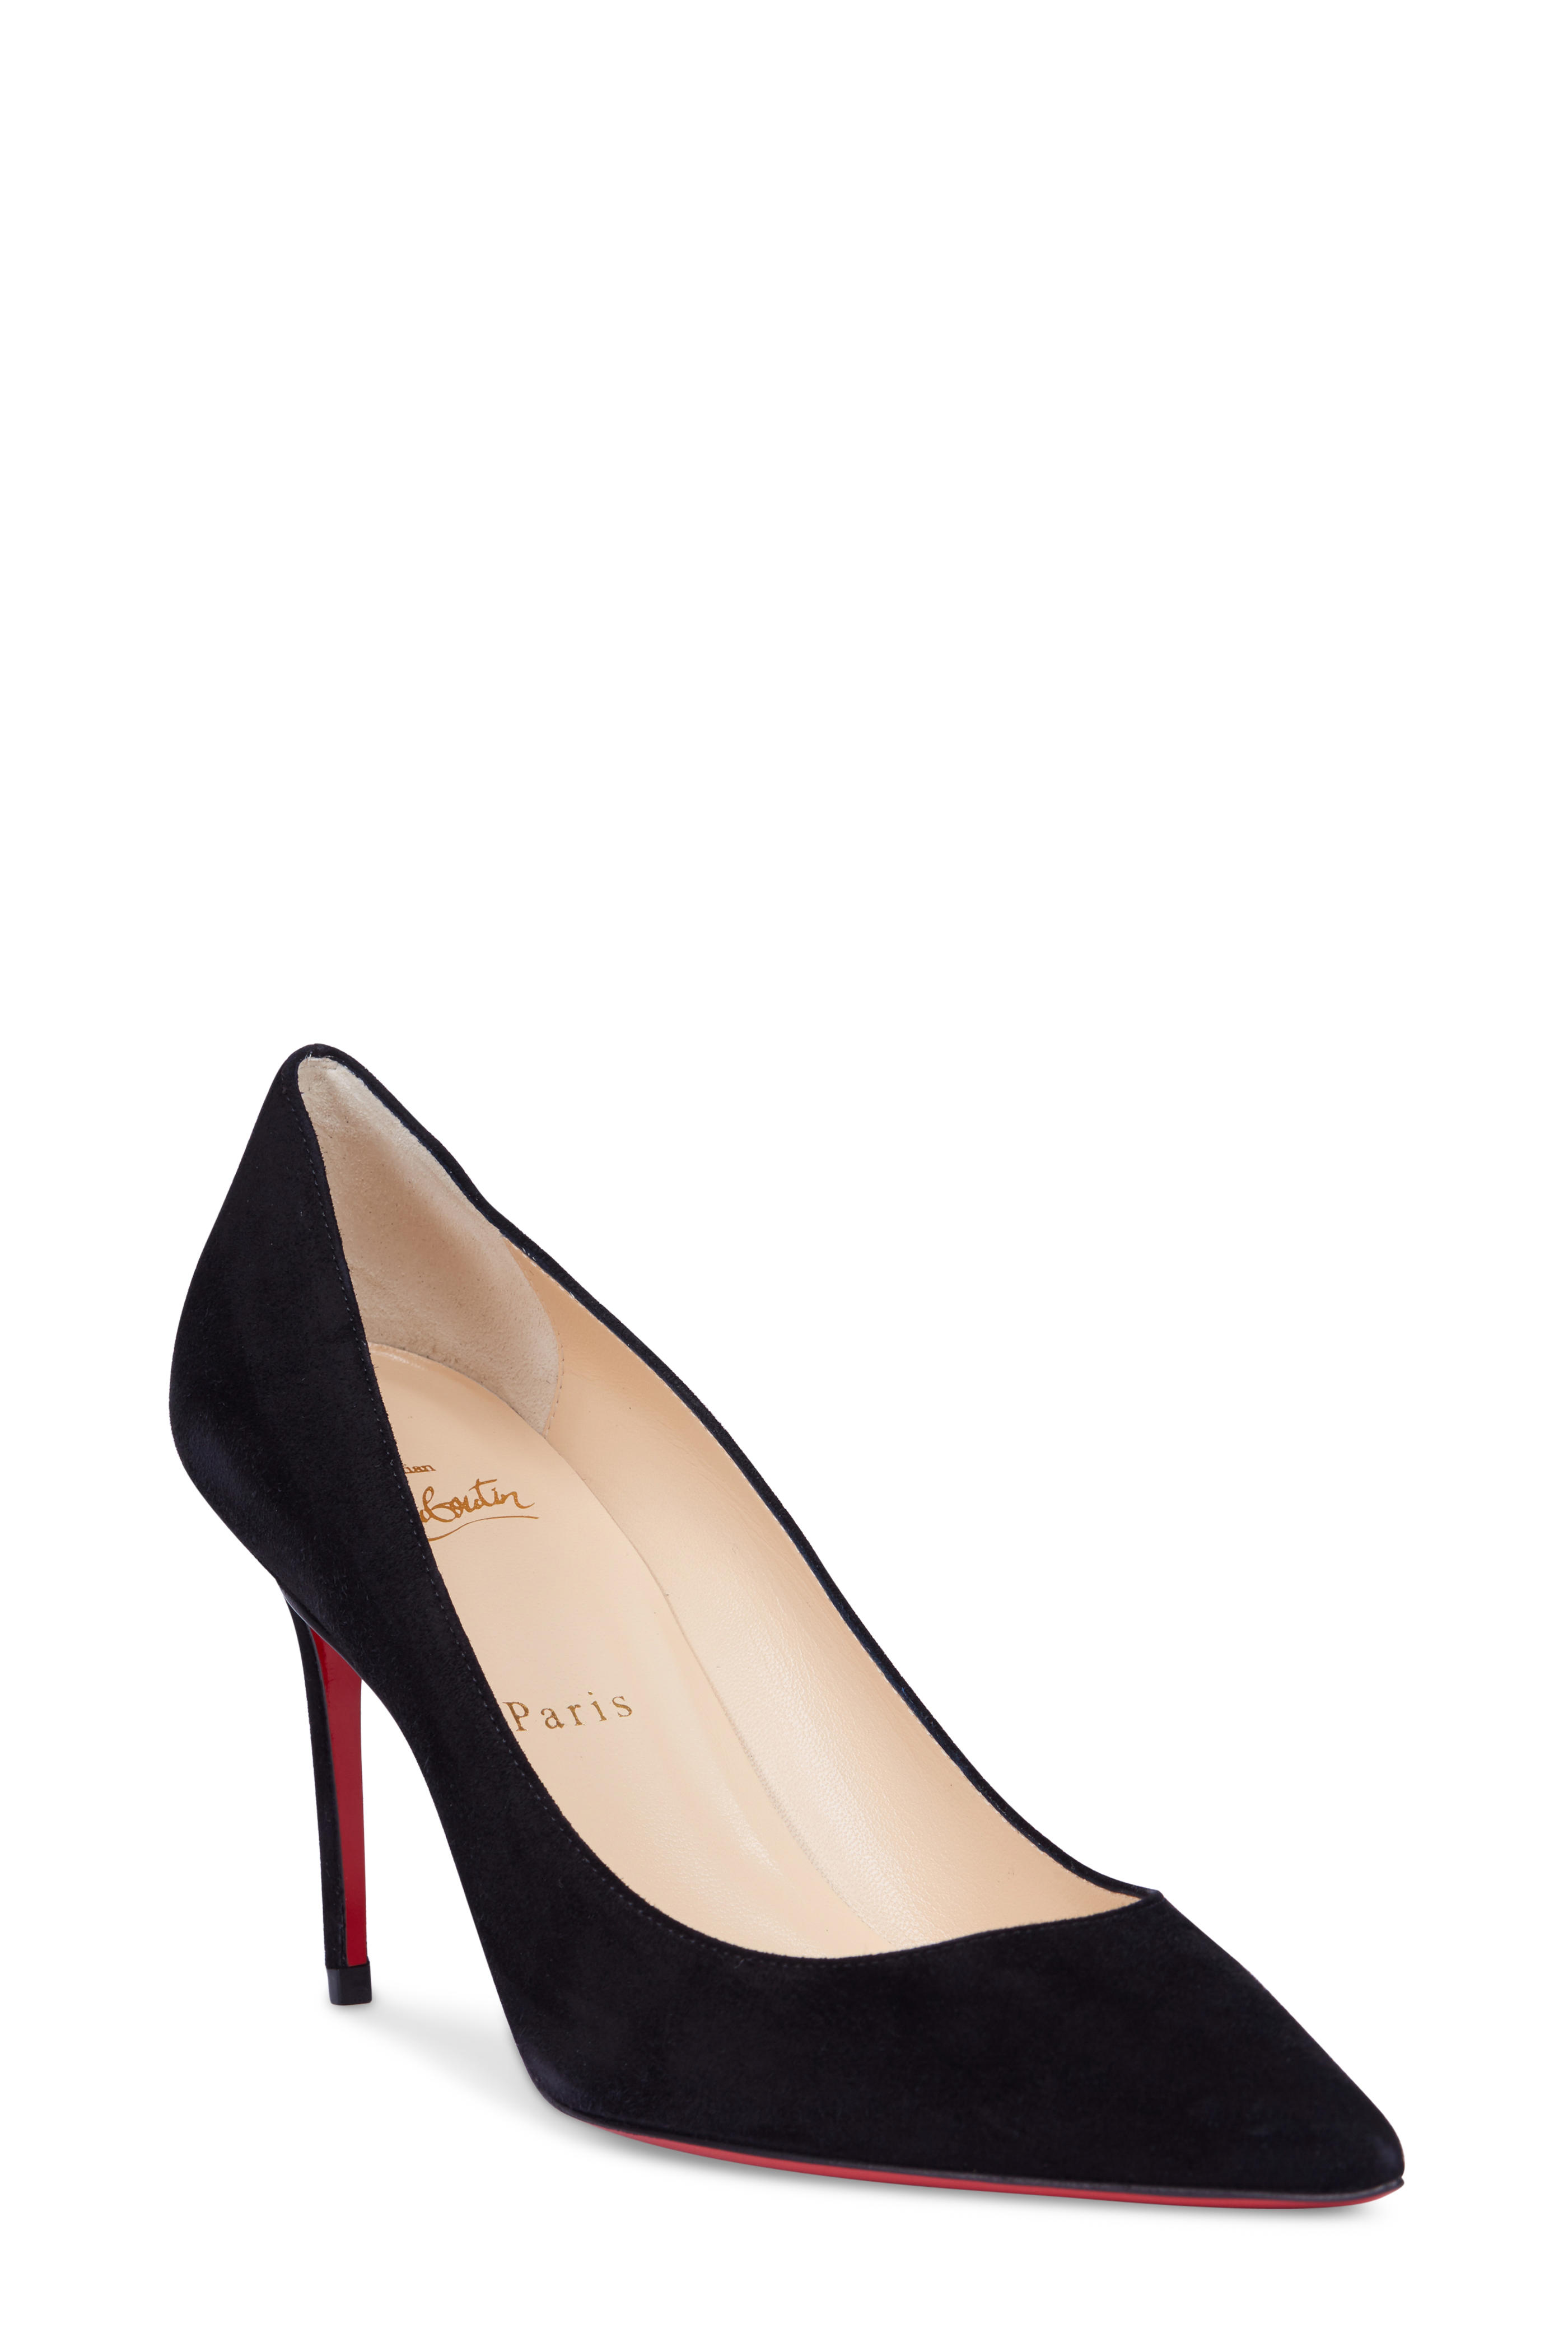 competitive price 7feba 6cfae Christian Louboutin - Decollete Black Suede Pump, 85mm ...